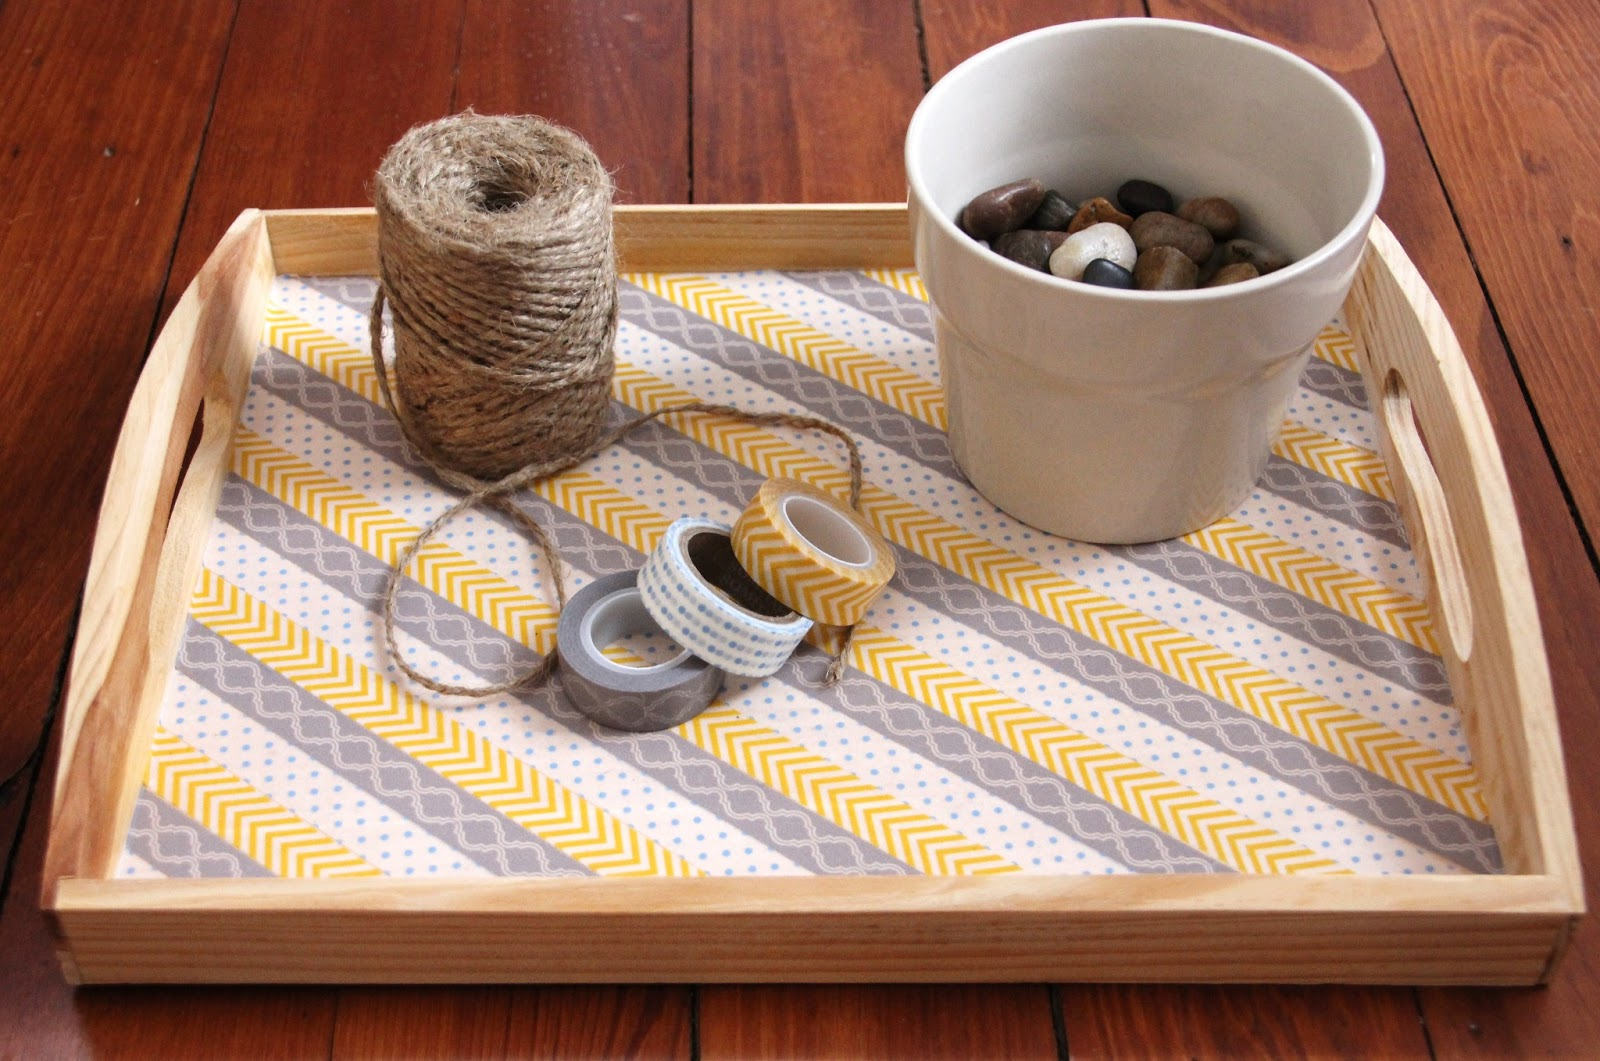 Serving Tray with White Pots | Washi Tape Ideas | Creative Ways To Use Washi Tape